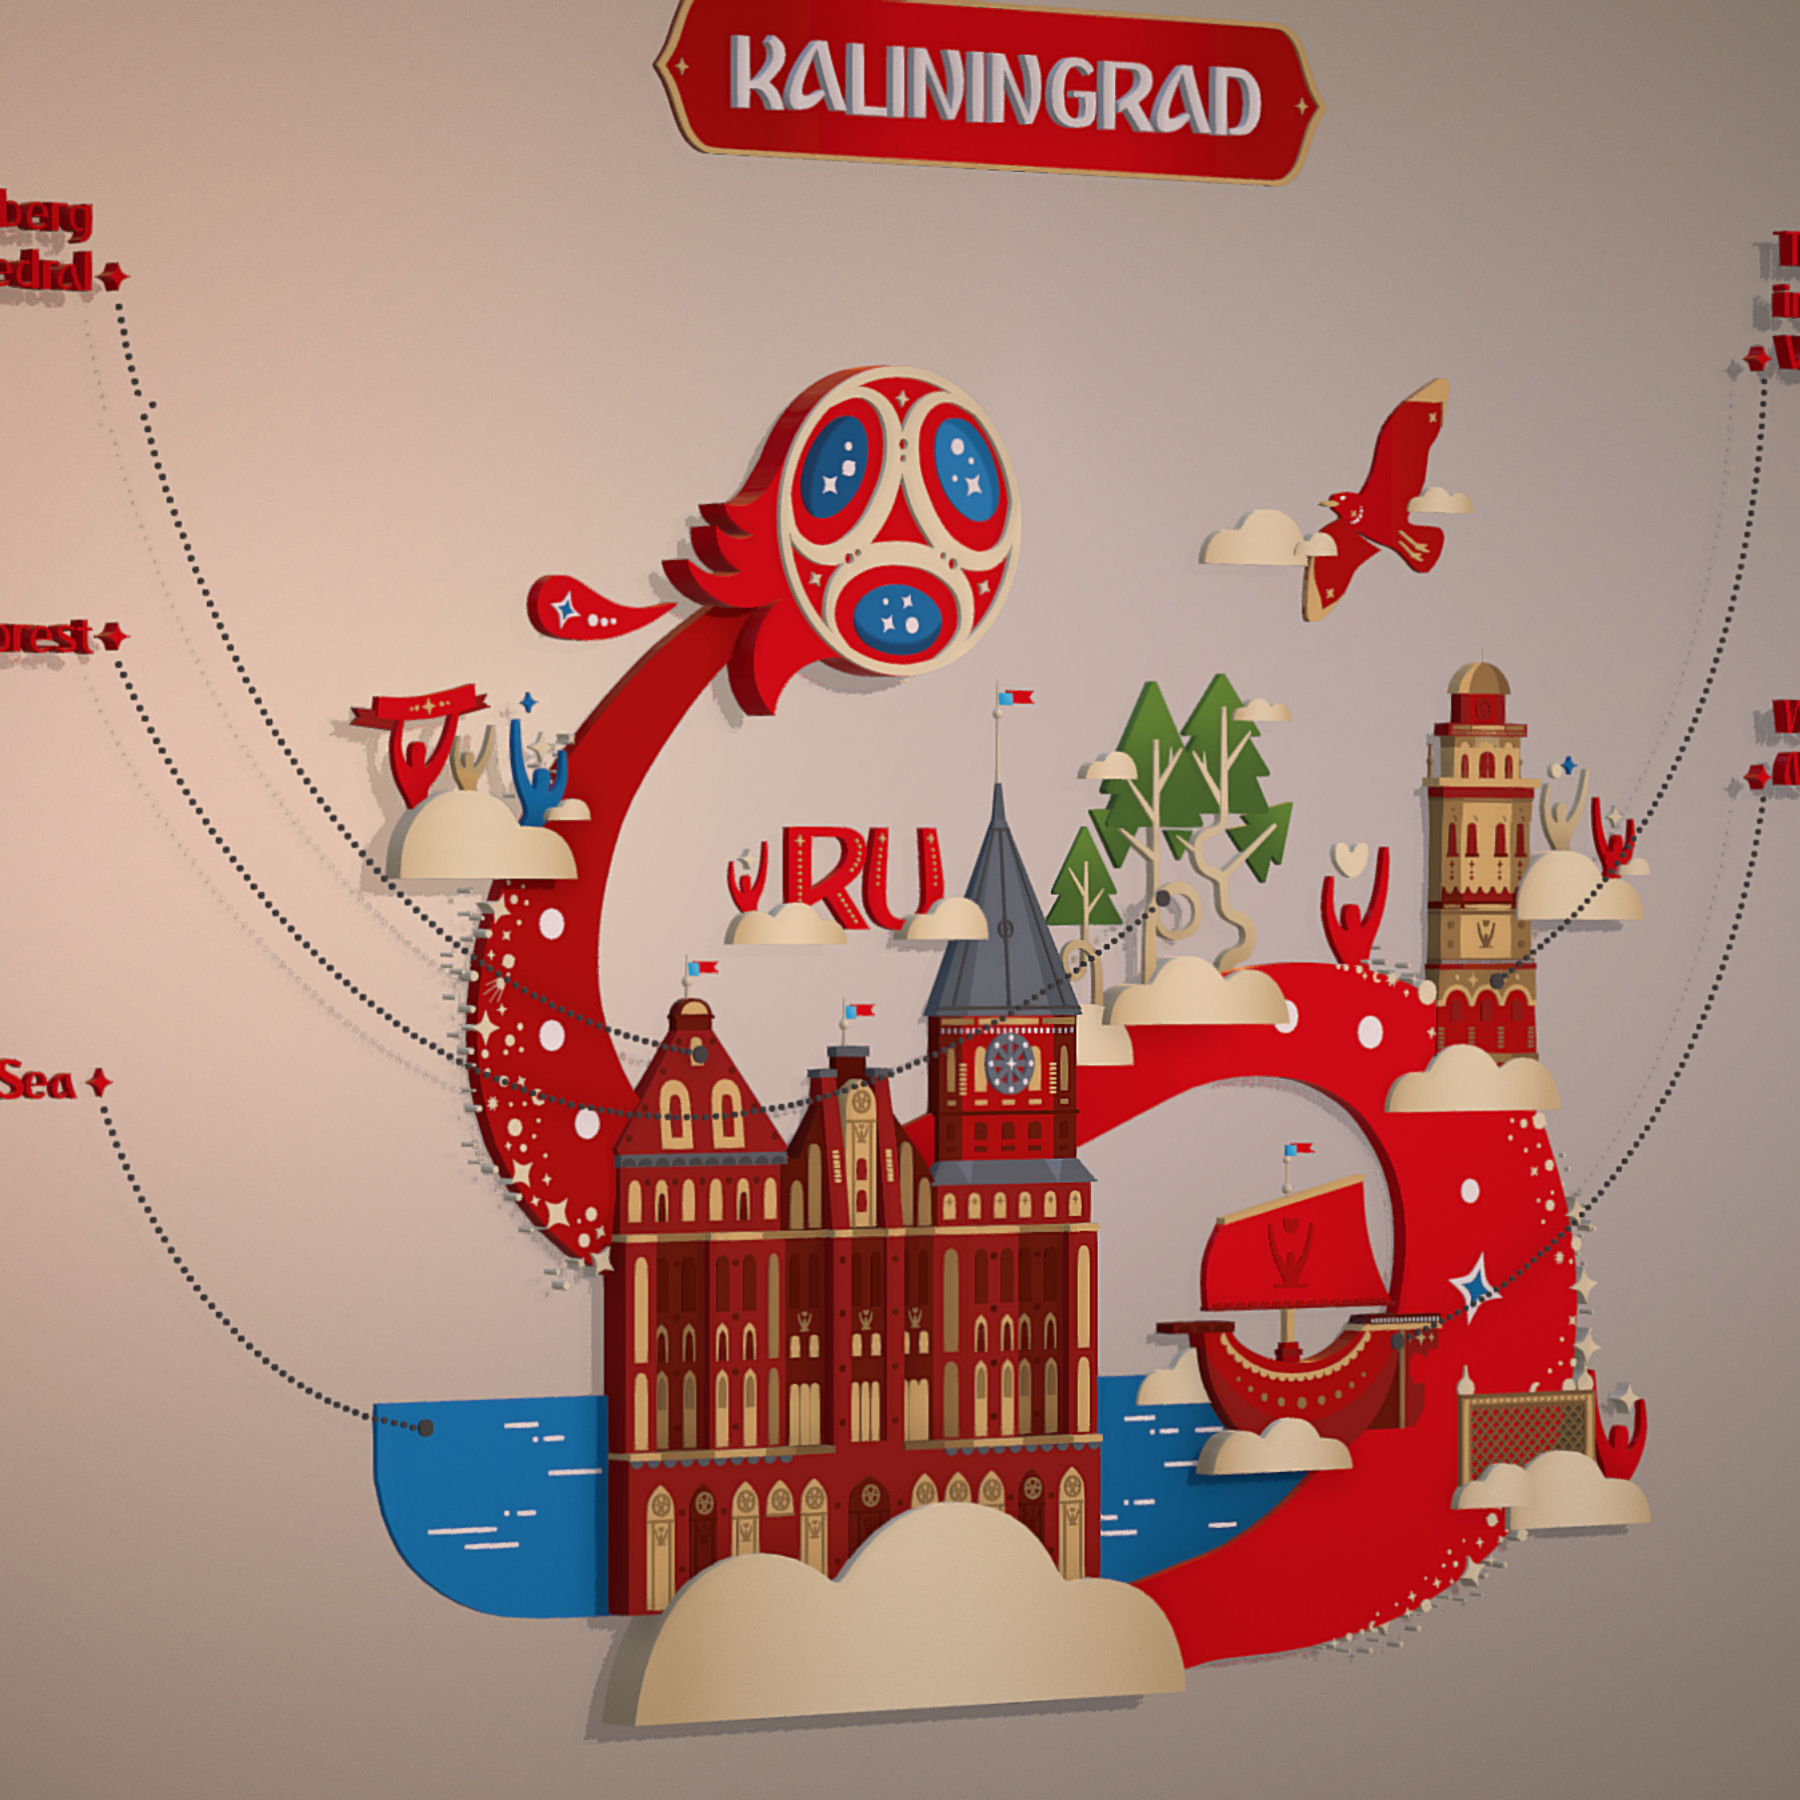 fifa world cup 2018 russia host city kaliningrad 3d model max  fbx jpeg jpg ma mb obj 271603